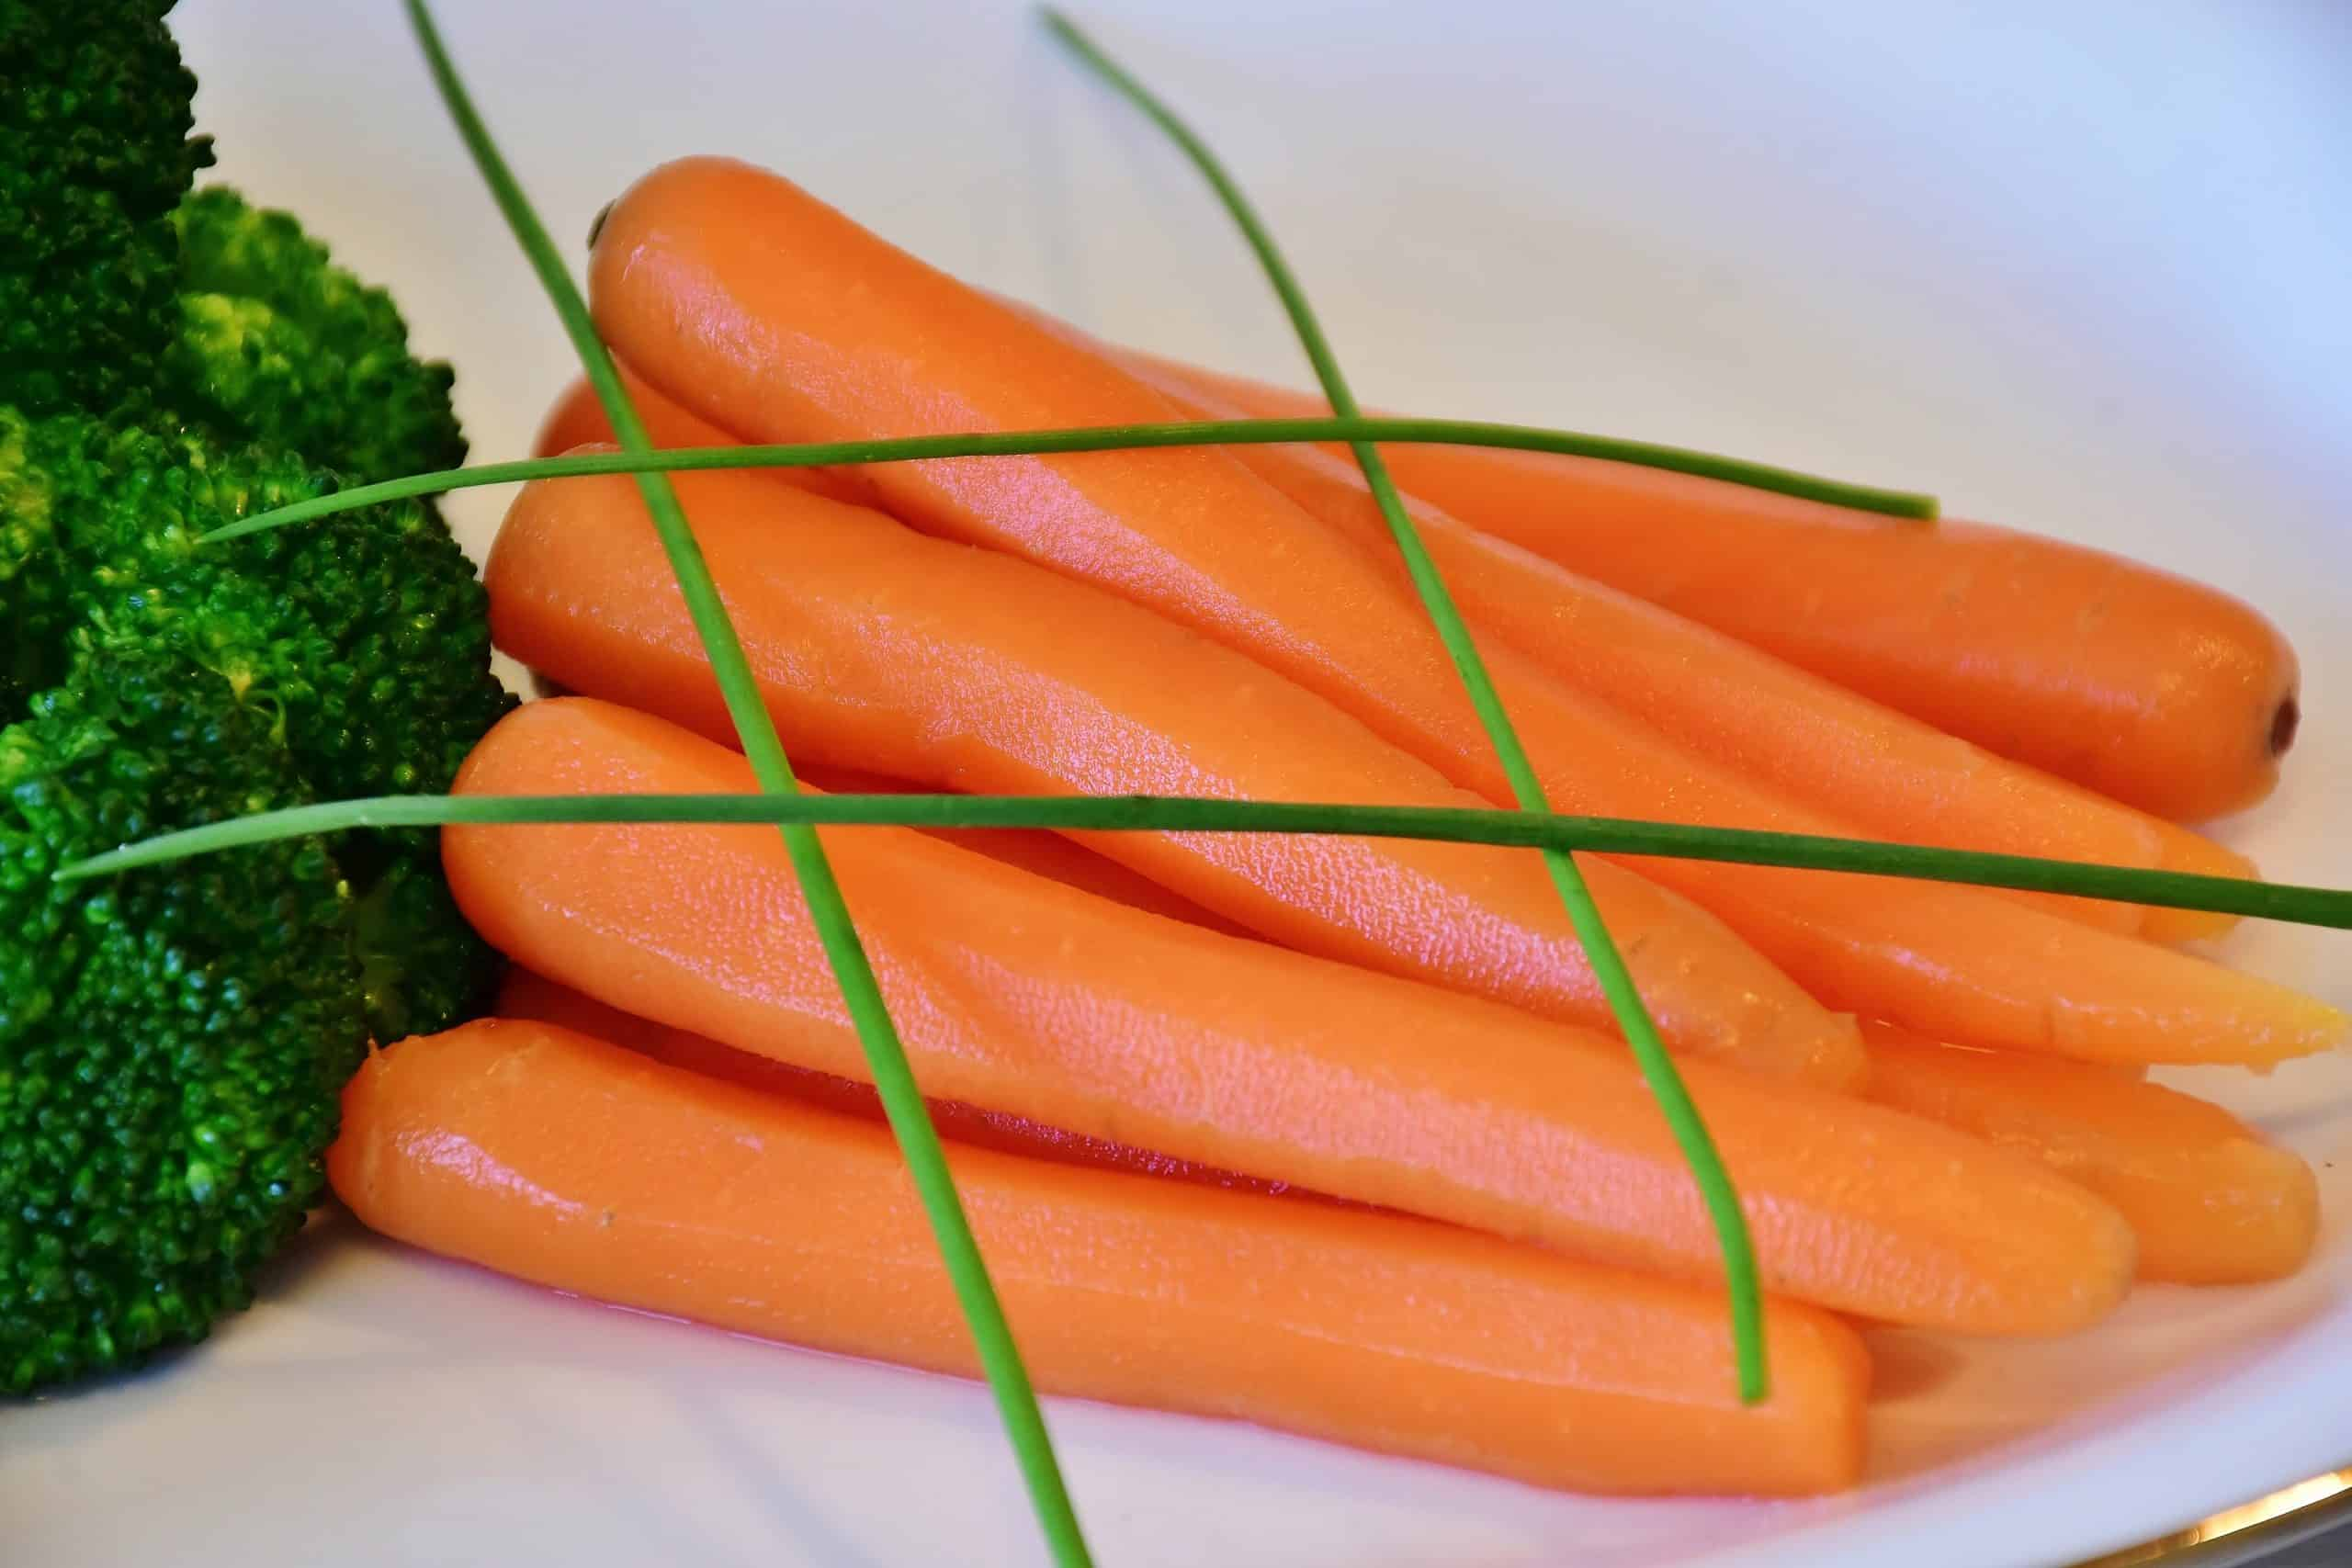 blanched food, science of blanching, food preservation science